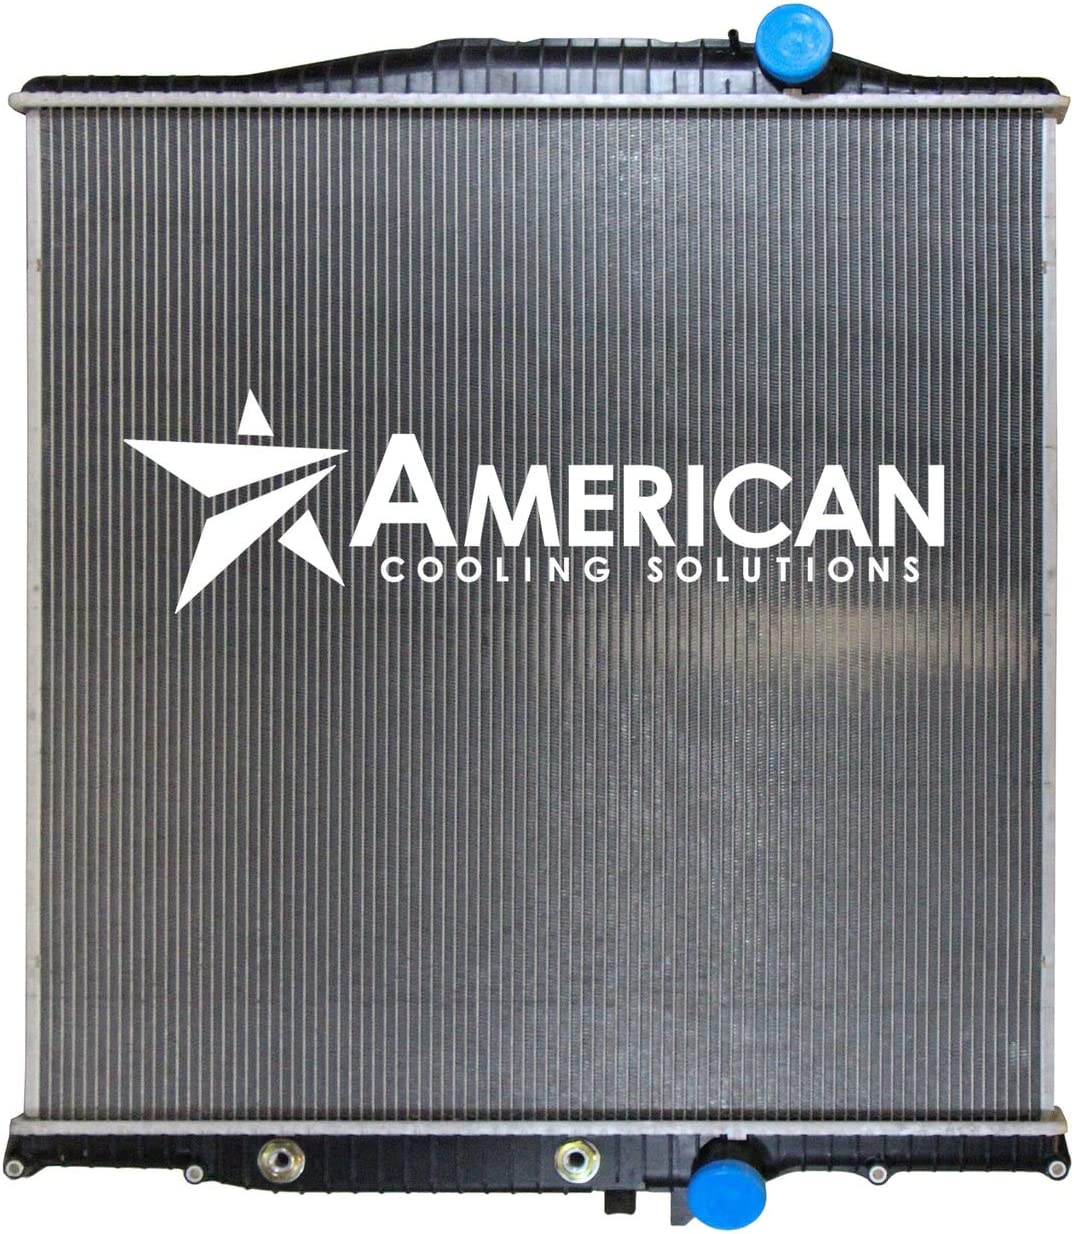 New Replacement Radiator w/o Frame for Volvo VN VNL & Mack CXN Trucks with Transmission Cooler